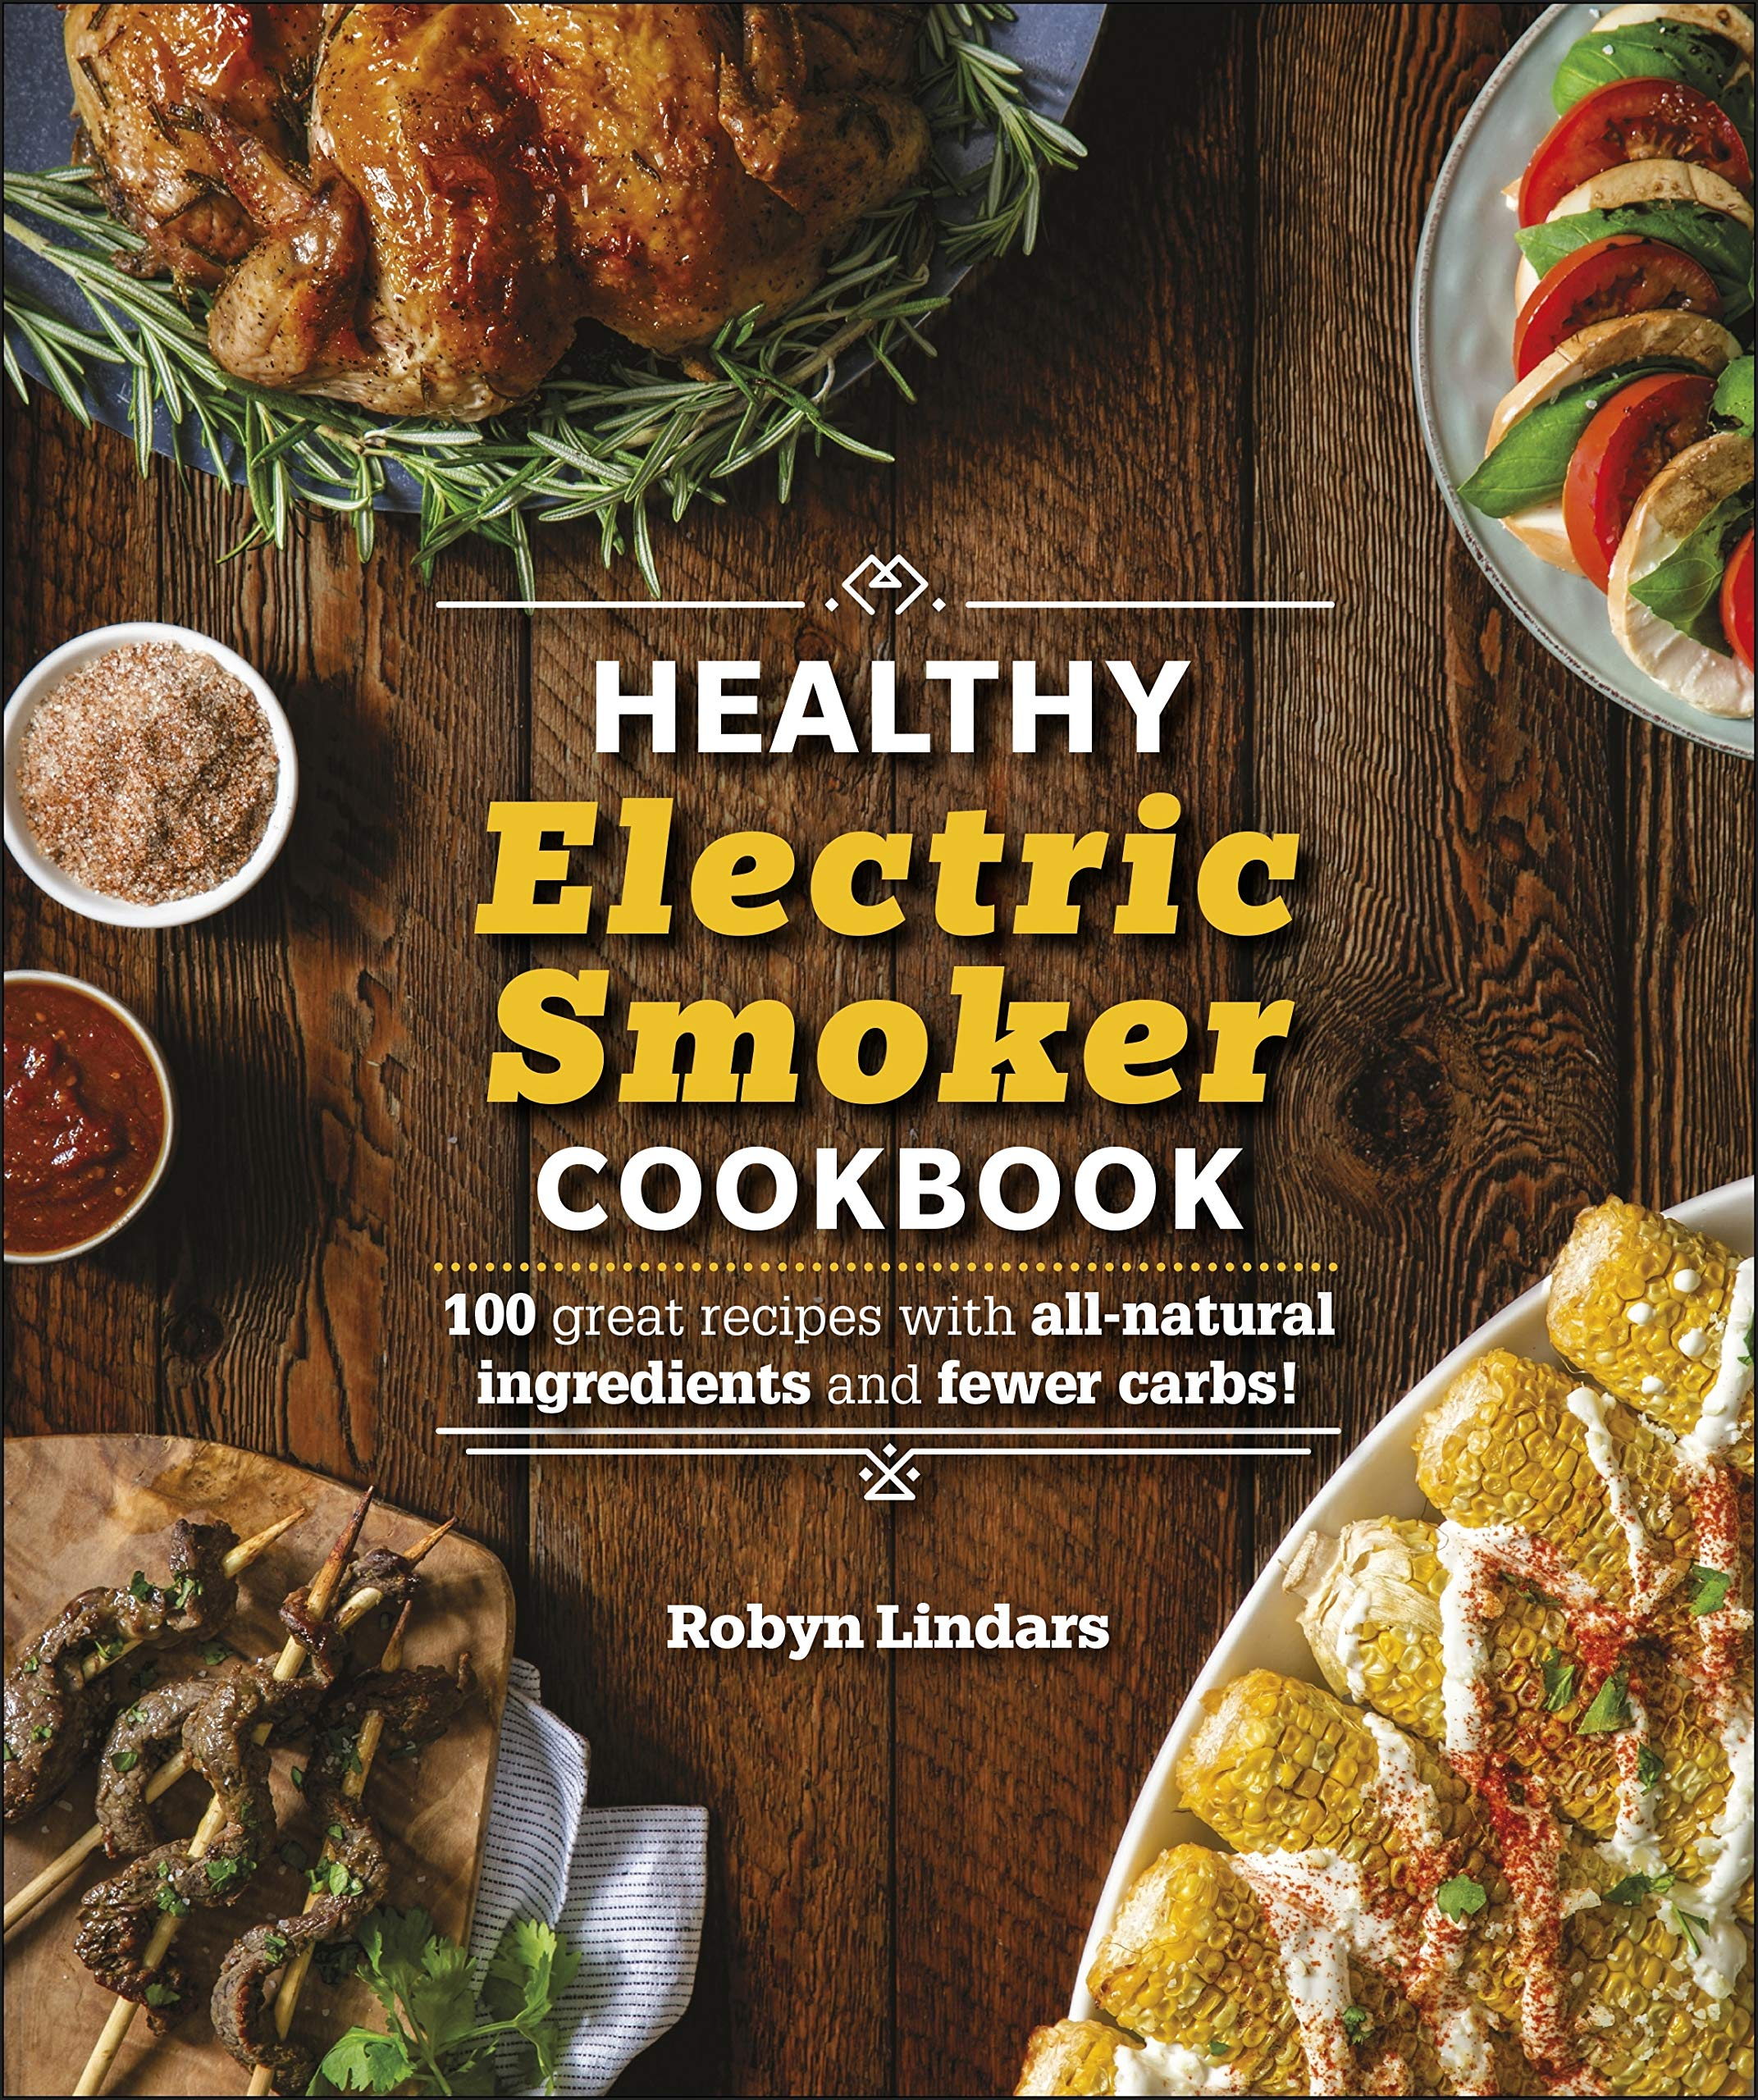 The Healthy Electric Smoker Cookbook: 100 Recipes with All-Natural Ingredients and Fewer Carbs! (Healthy Cookbook) 1